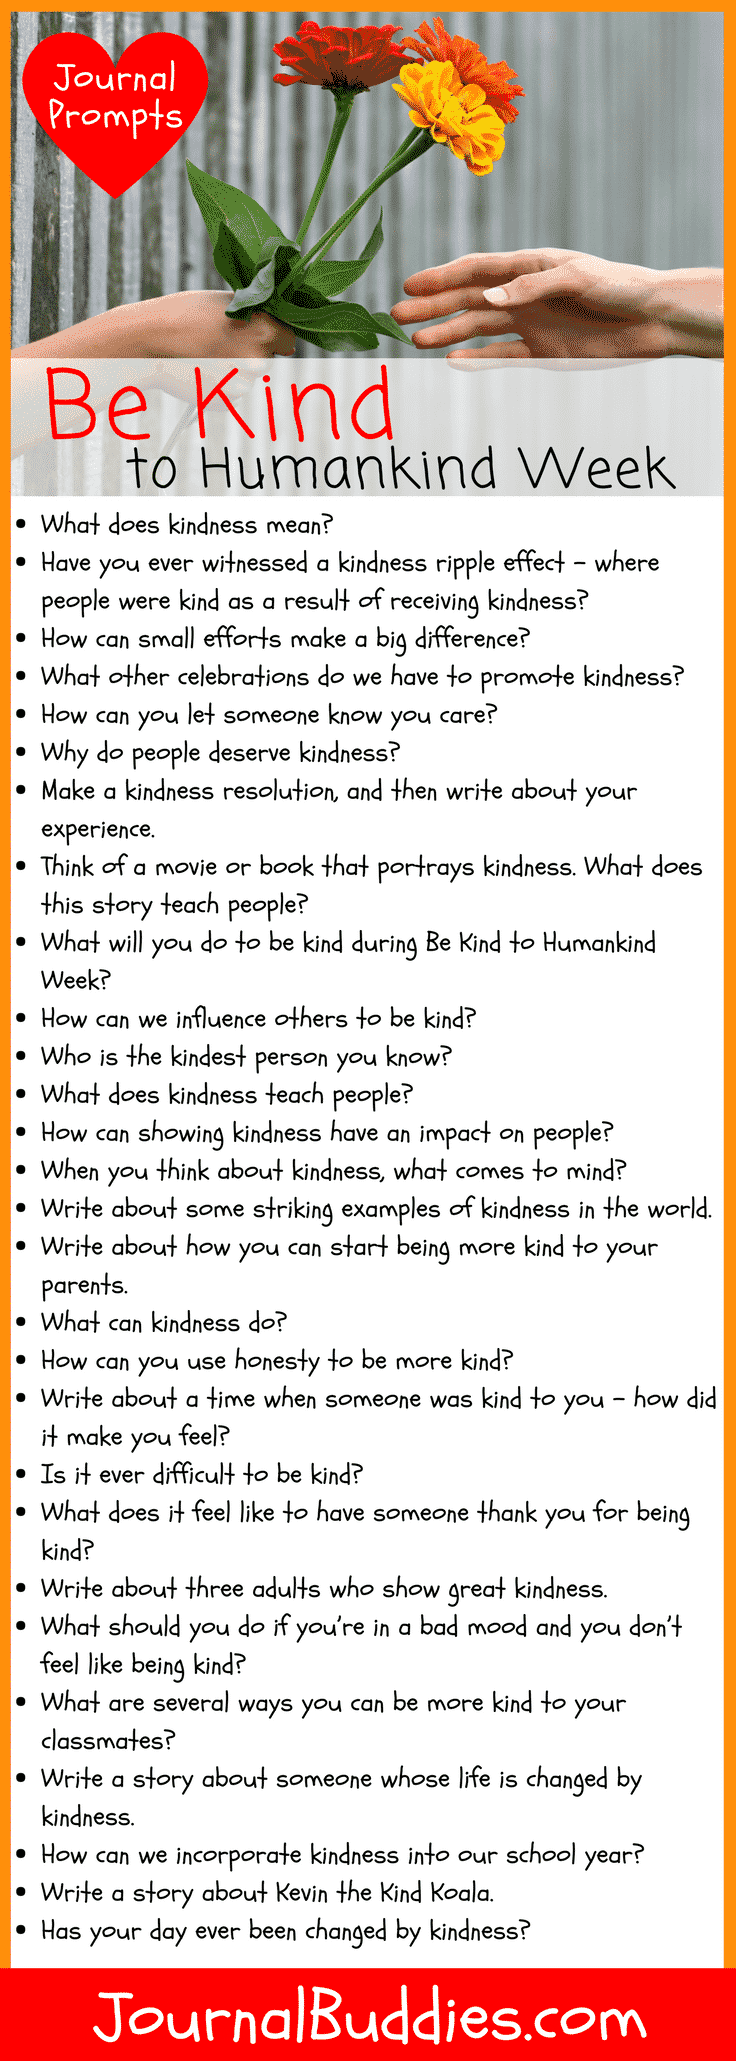 Writing Exercises about Kindness to be Used During Be Kind to Humankind Week